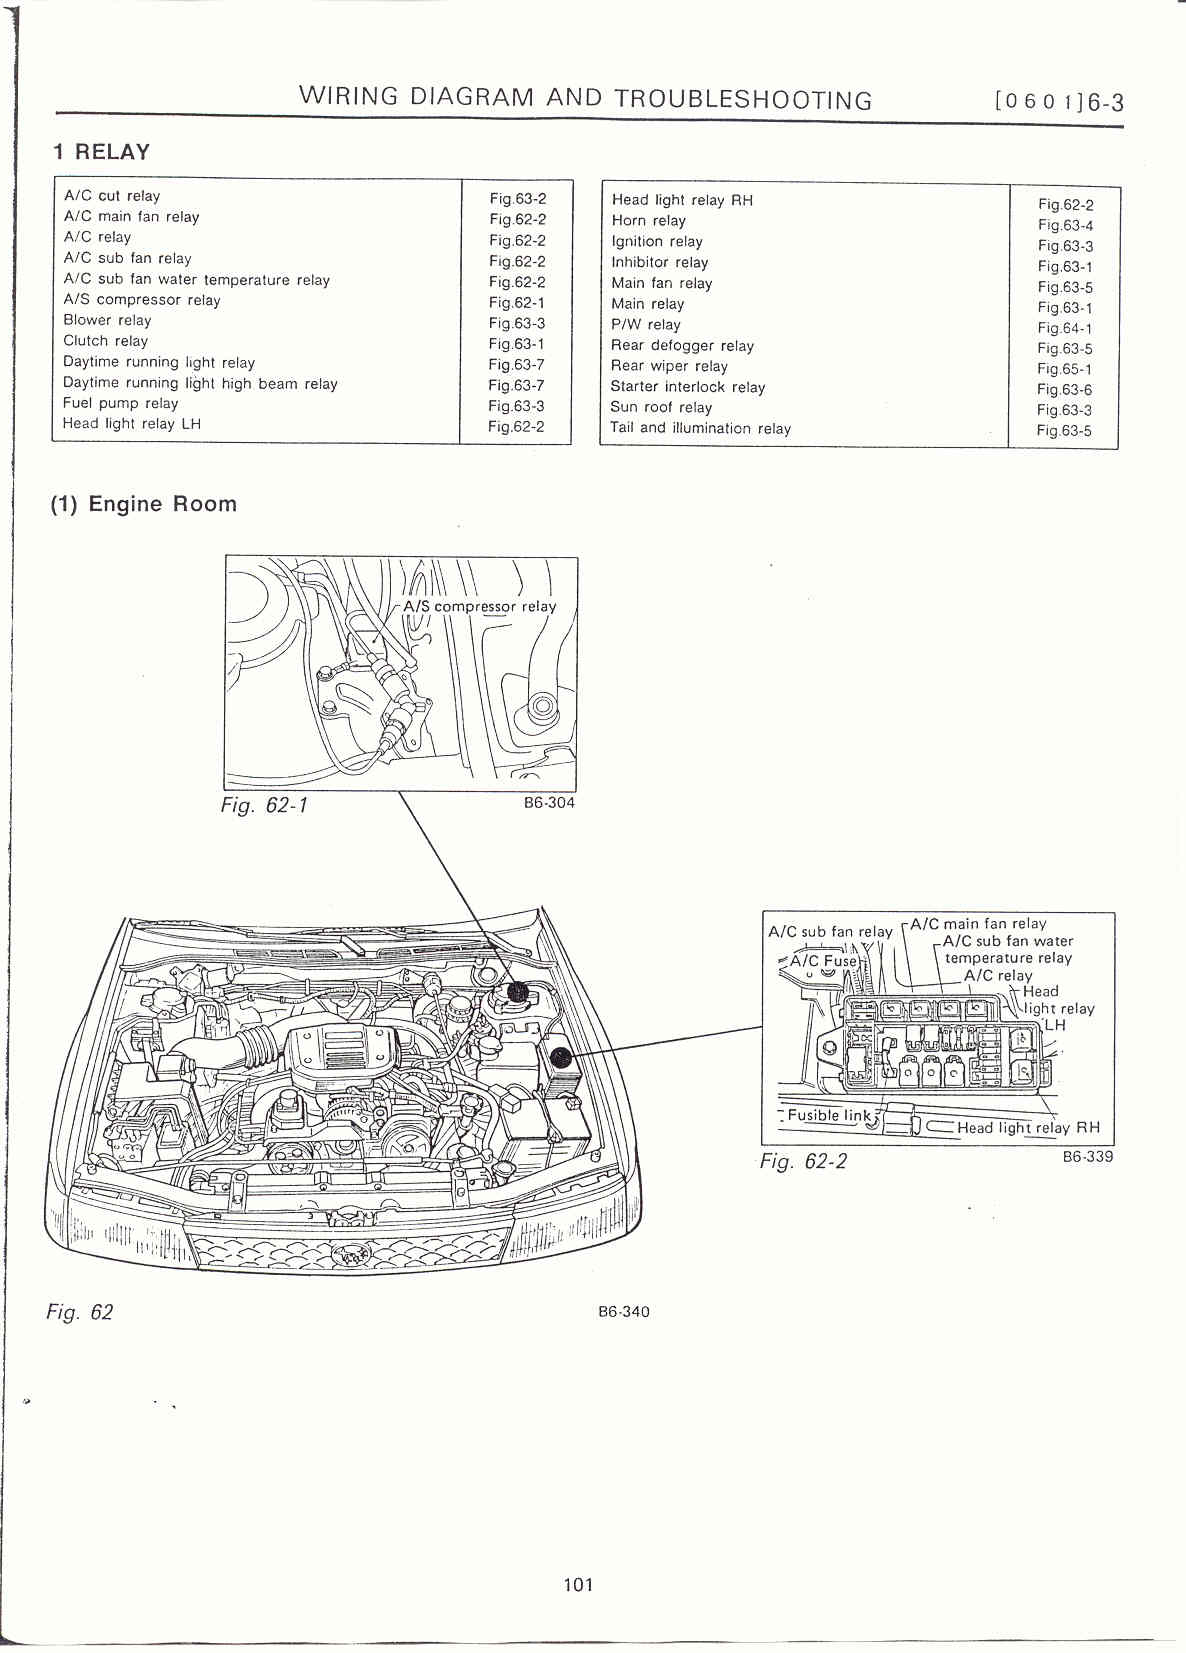 surrealmirage subaru legacy swap electrical info notes rh surrealmirage com  1.8L H 4 Subaru Engine Diagram